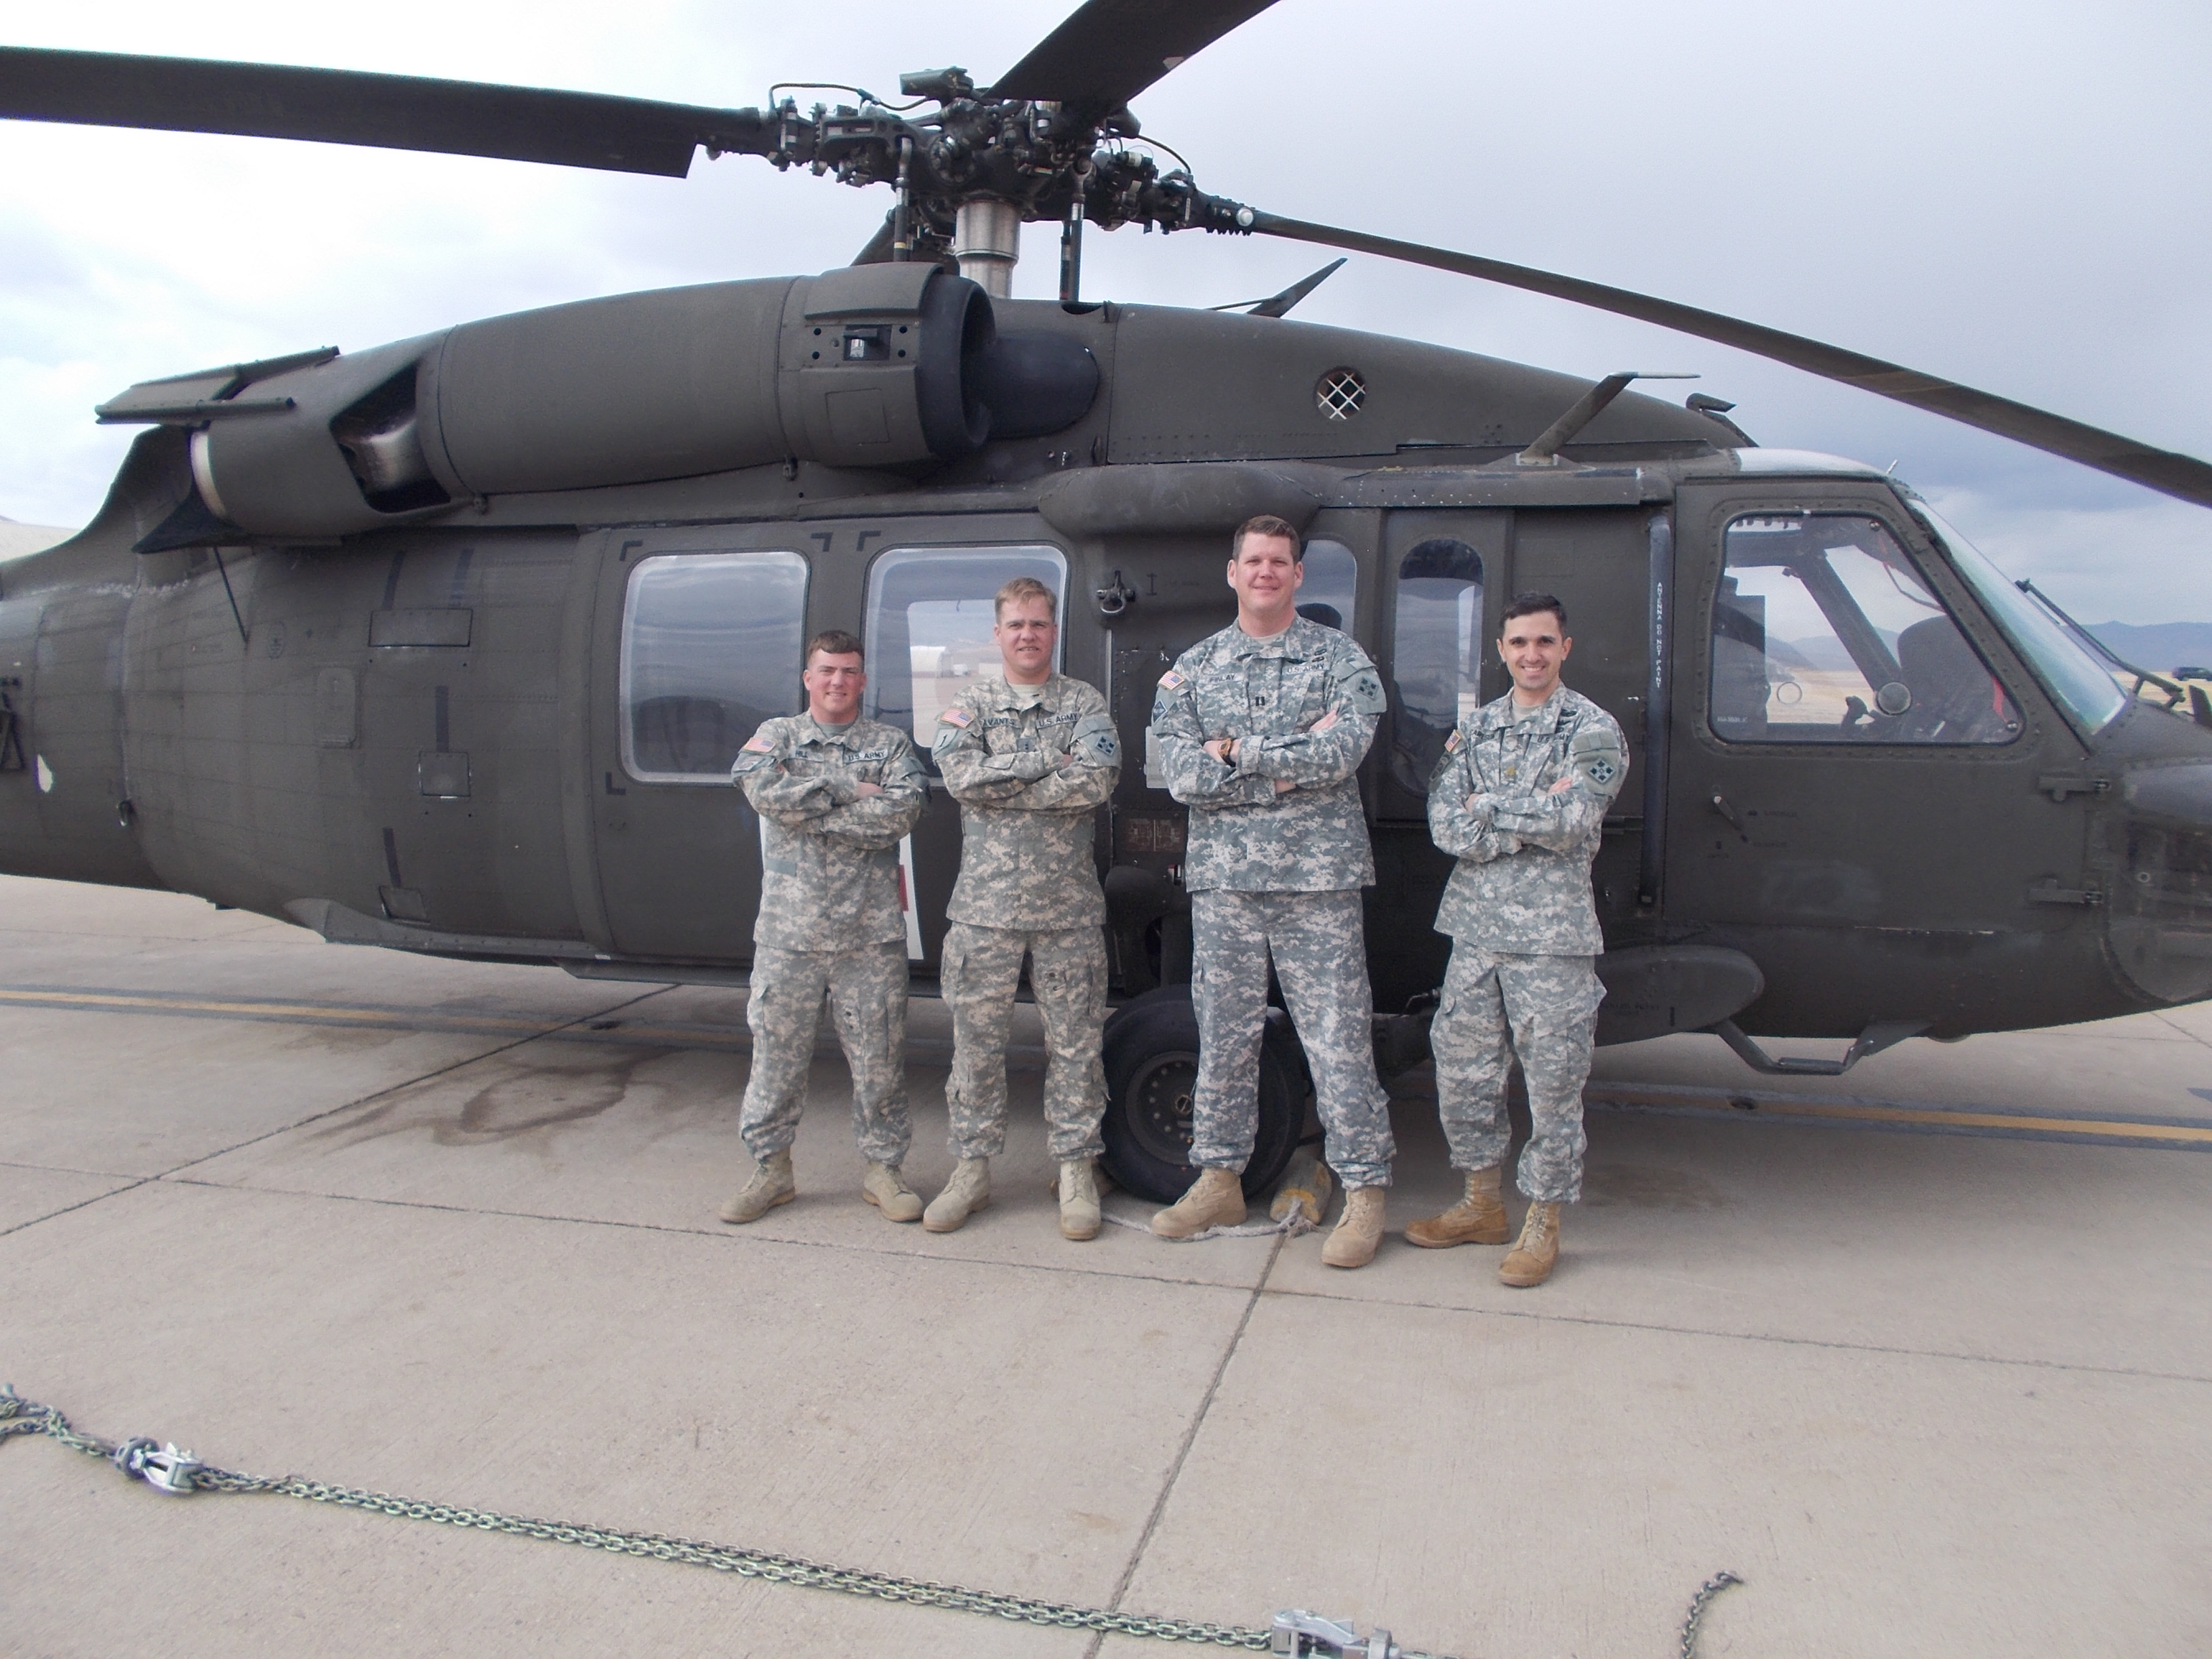 Left to right: Sgt. Justin Hill, CW2 Brennan Avants; Capt. Alec Finlay; Maj. Eric Carlson (credit: Colorado National Guard)